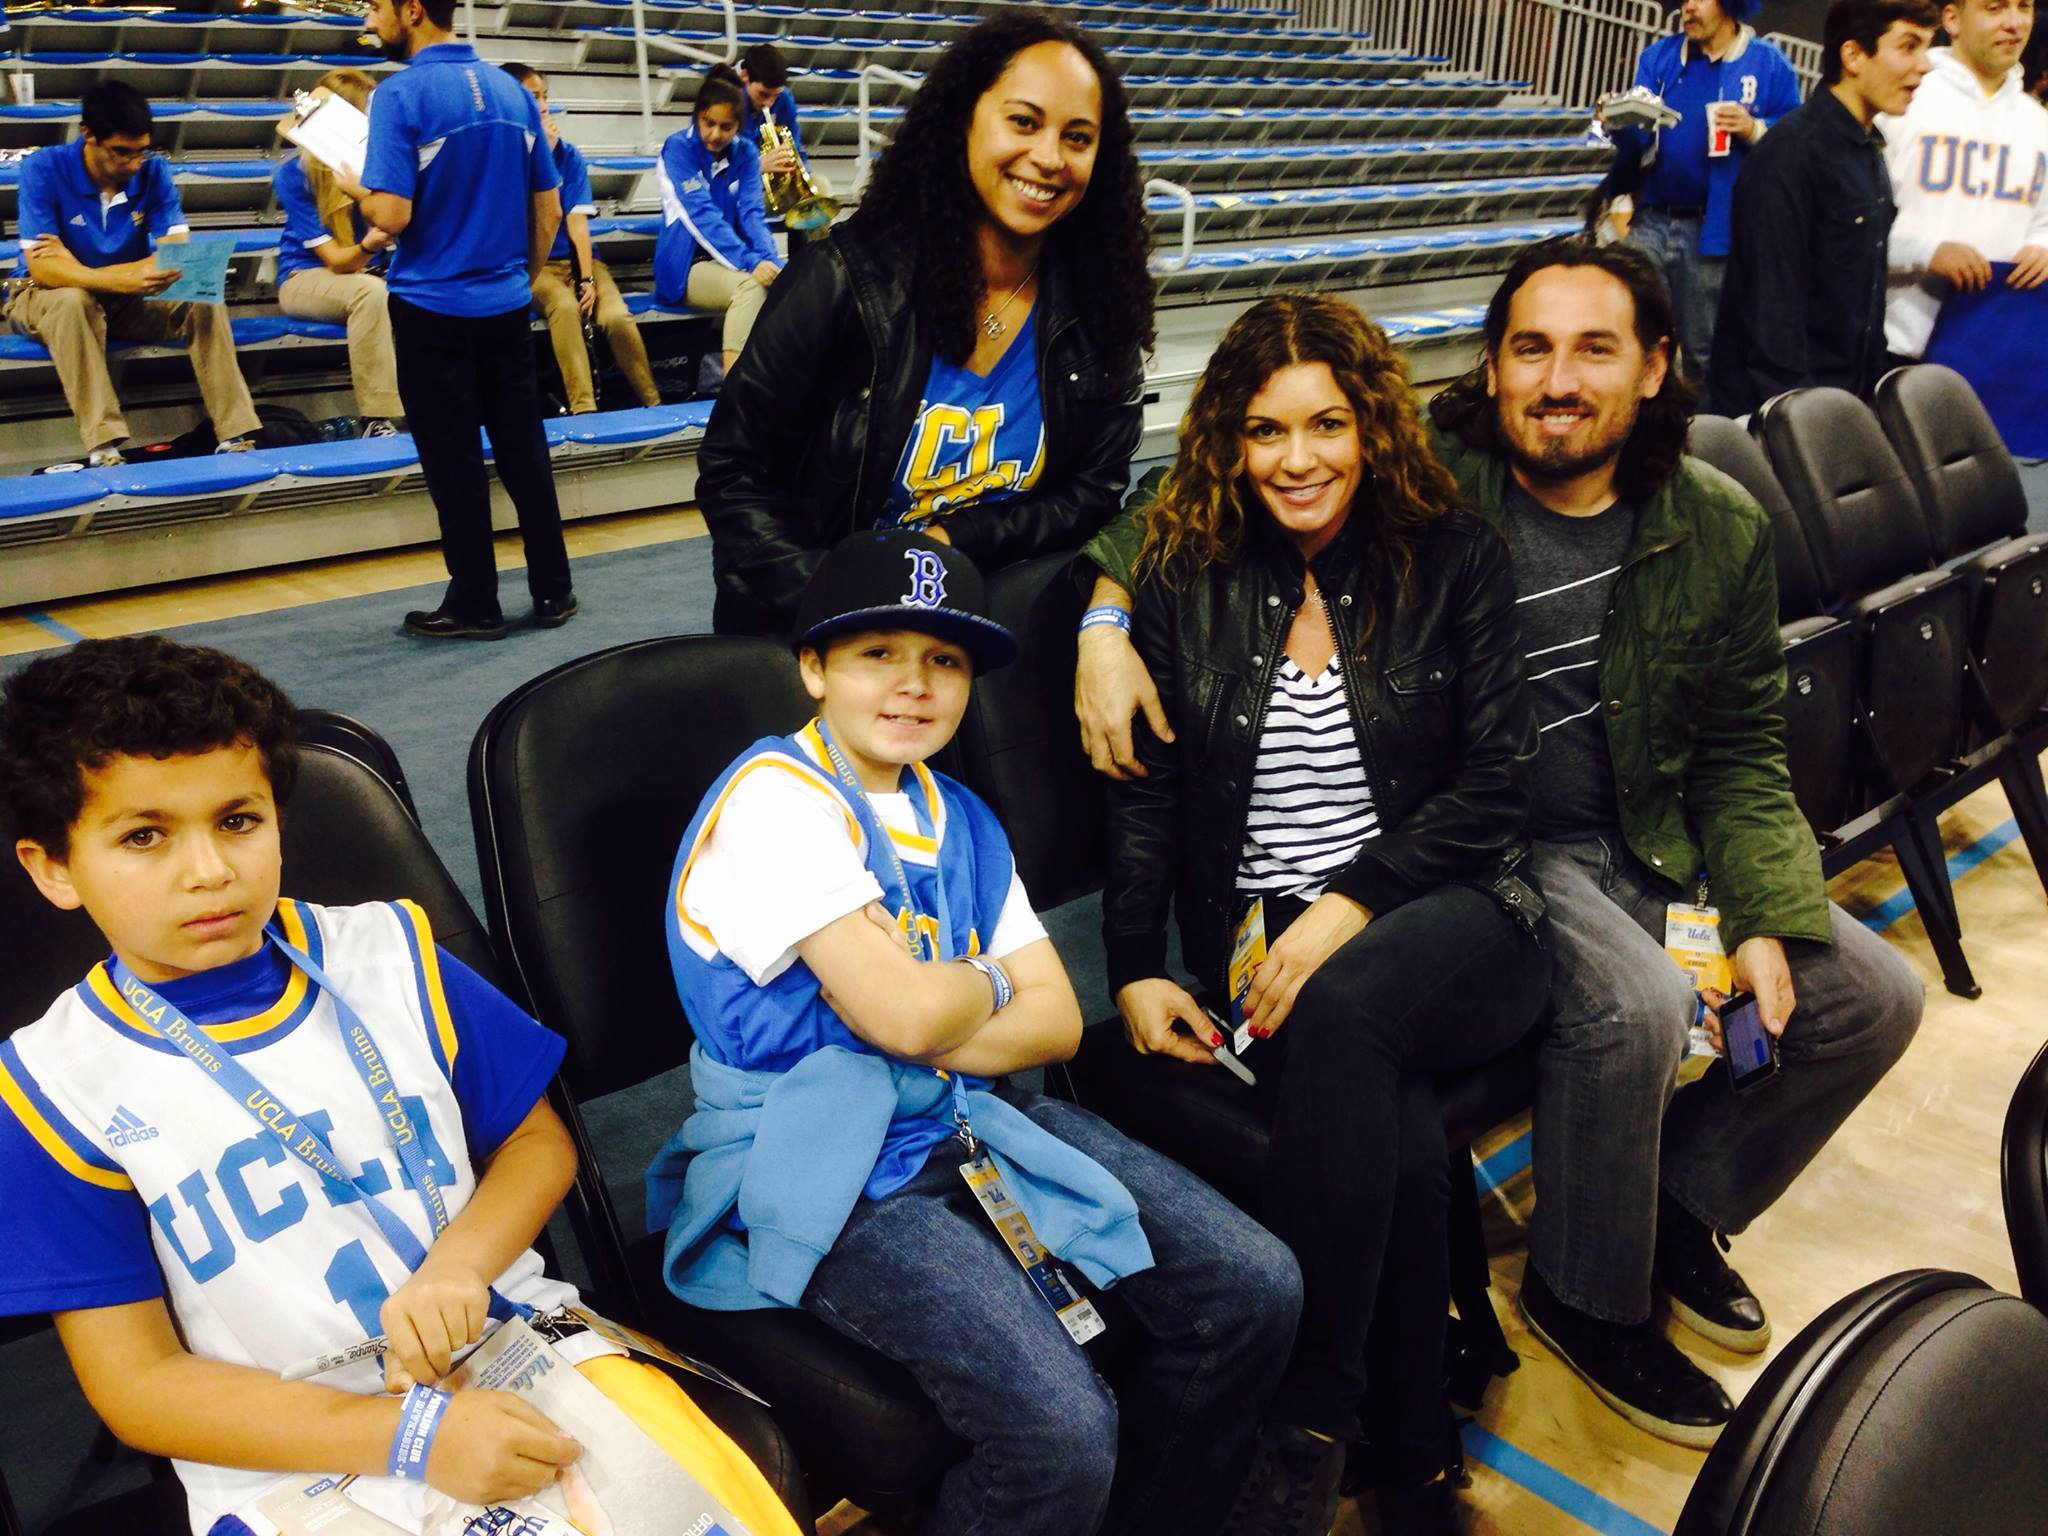 Logan with his family and friend, chilling like a villain in Pauley Pavillion.